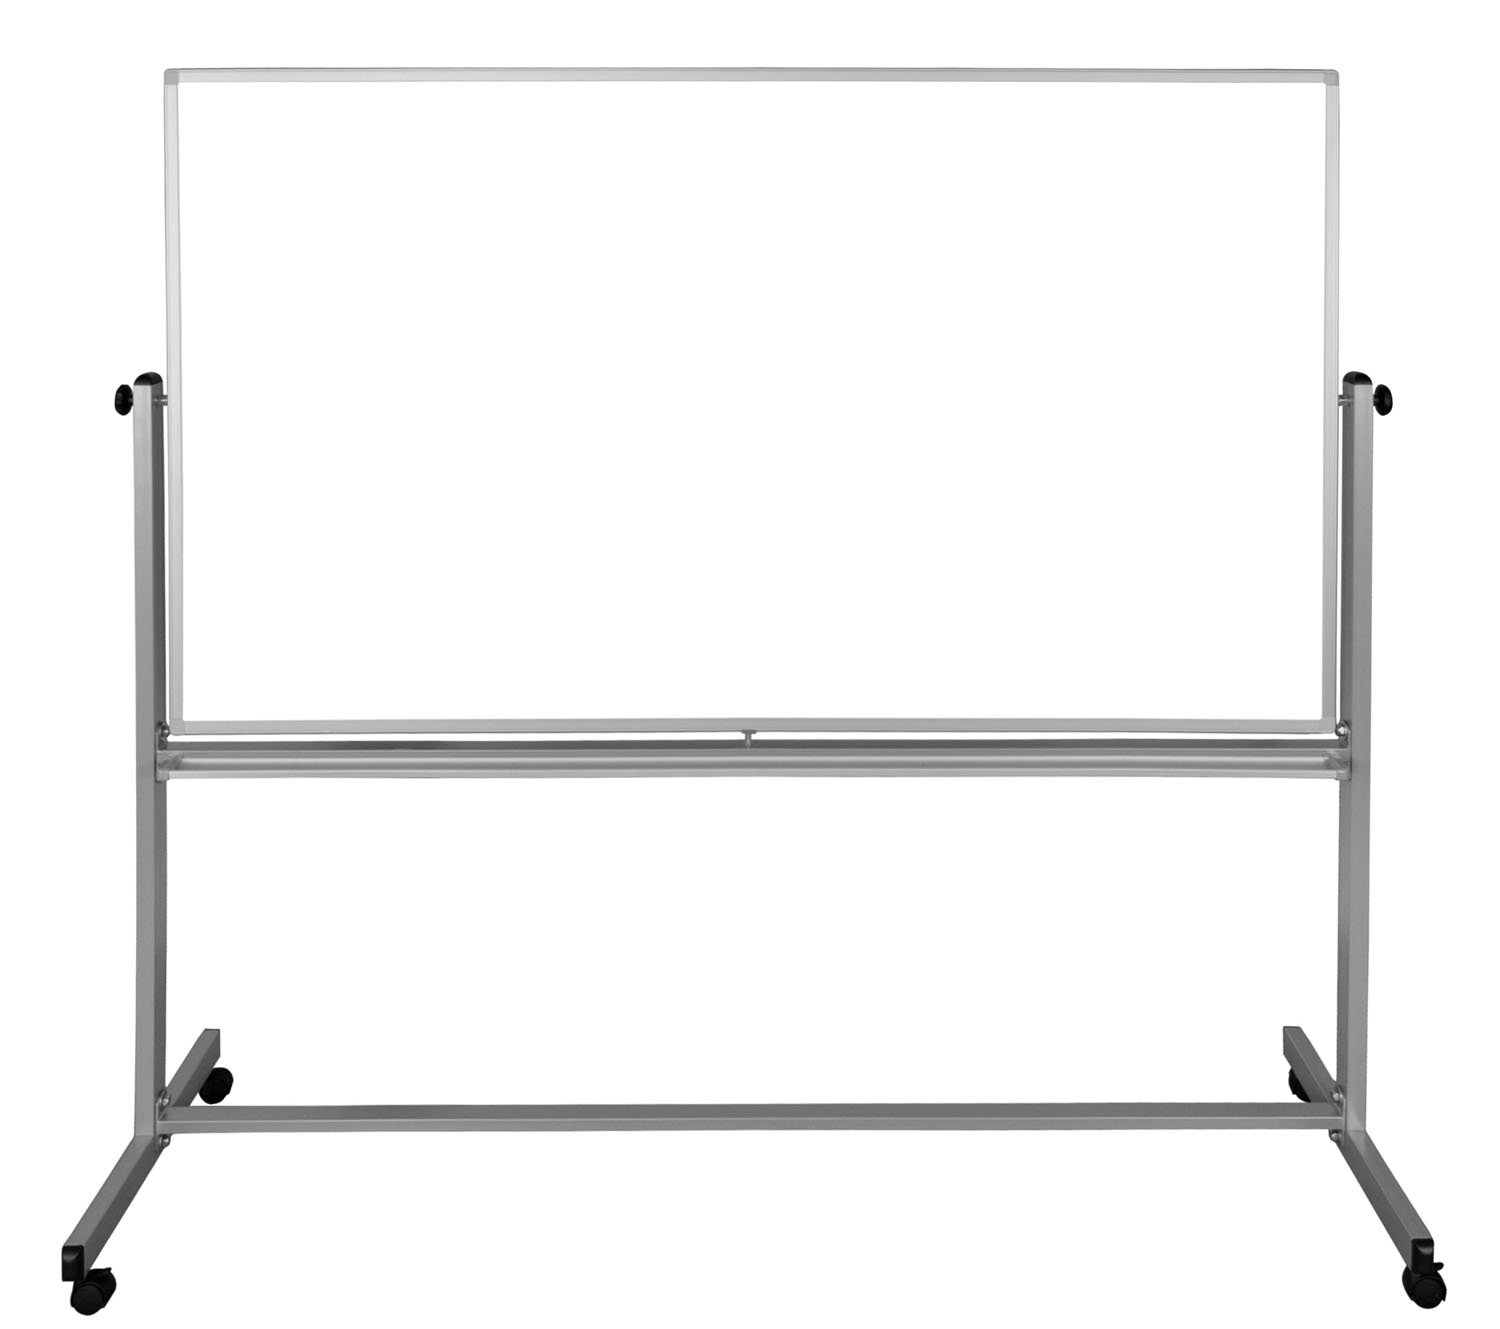 Offex 72'' x 48 '' Double Sided Mobile Staff Printed Music Whiteboard by Offex (Image #2)